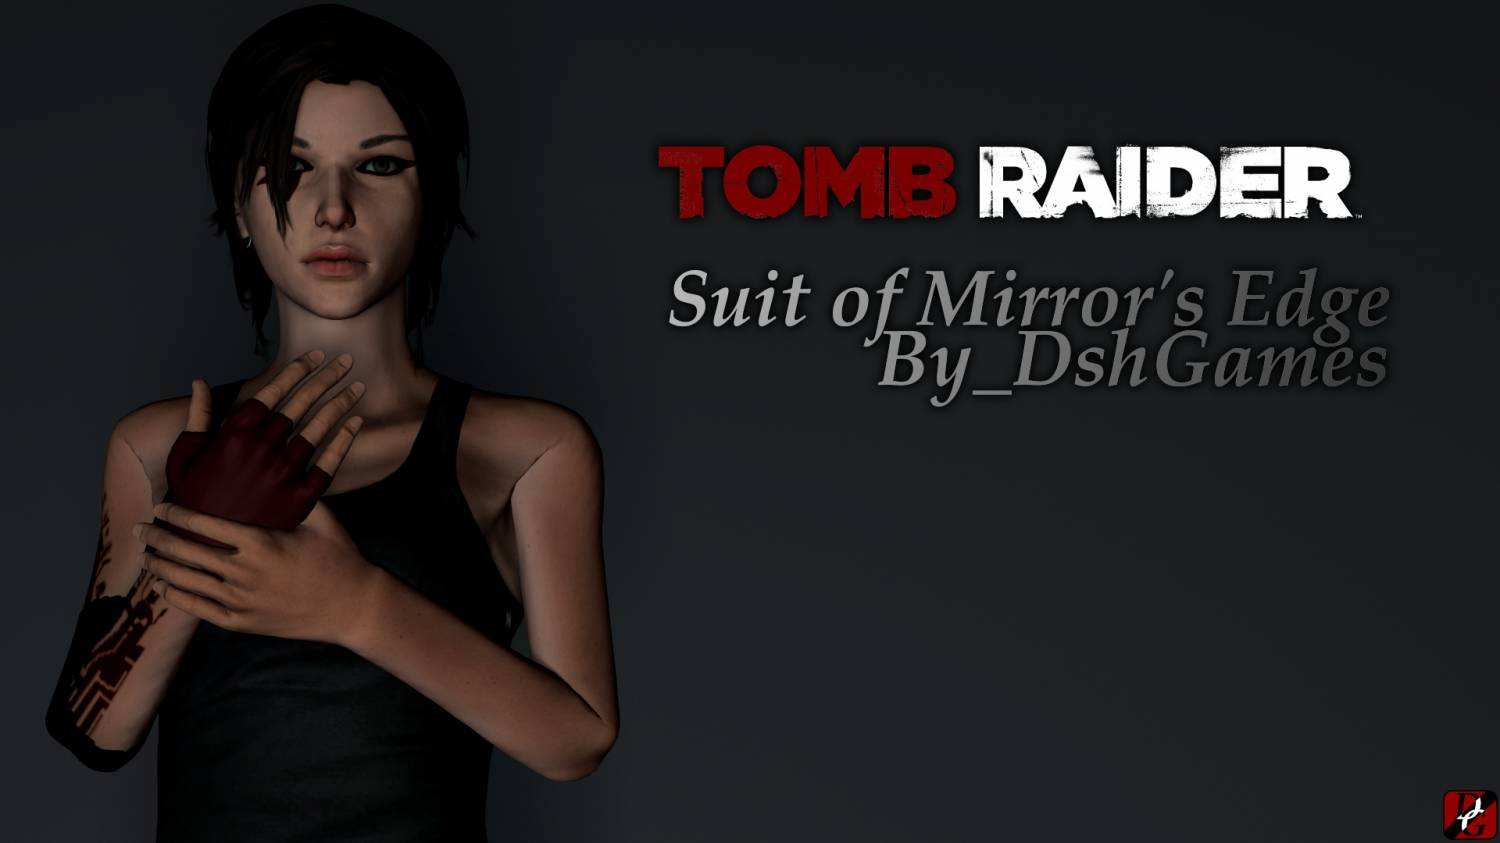 lara croft Suit of Mirror's Edge gta